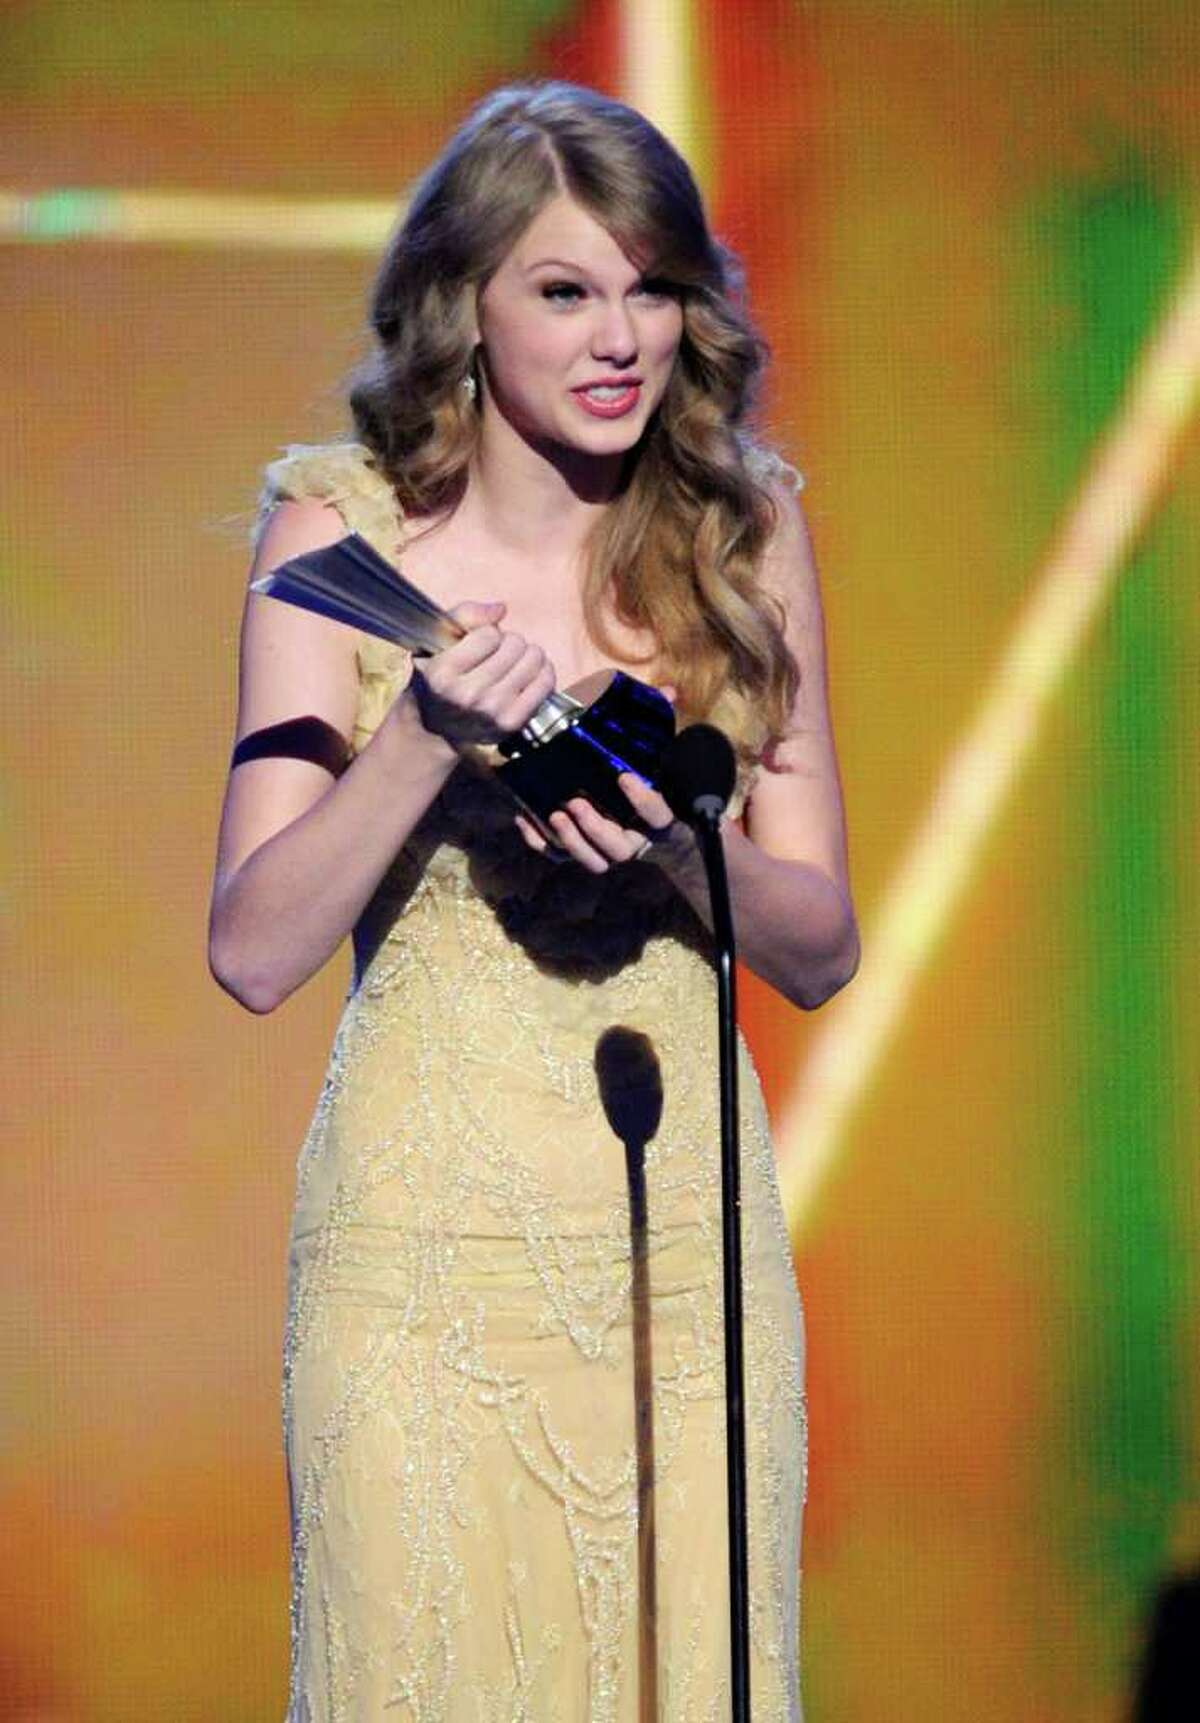 LAS VEGAS, NV - APRIL 03: Singer Taylor Swift accepts the Entertainer of the Year Award onstage at the 46th Annual Academy Of Country Music Awards held at the MGM Grand Garden Arena on April 3, 2011 in Las Vegas, Nevada. (Photo by Ethan Miller/Getty Images) *** Local Caption *** Taylor Swift